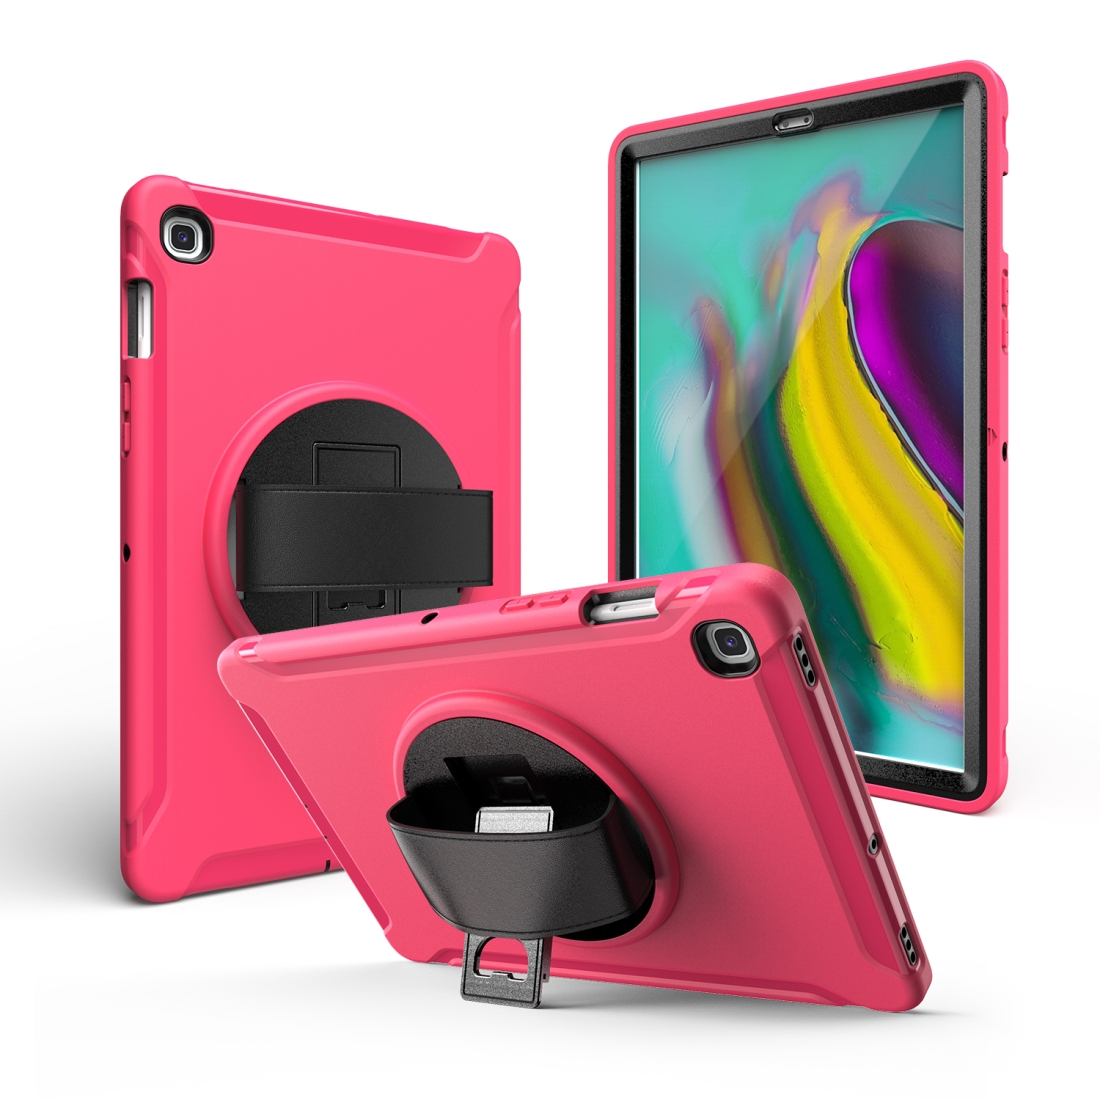 iPad 10.5 Case/ iPad Air 10.5 Case, Features A Rotating Protective Case With Hand-strap (Rose Red)